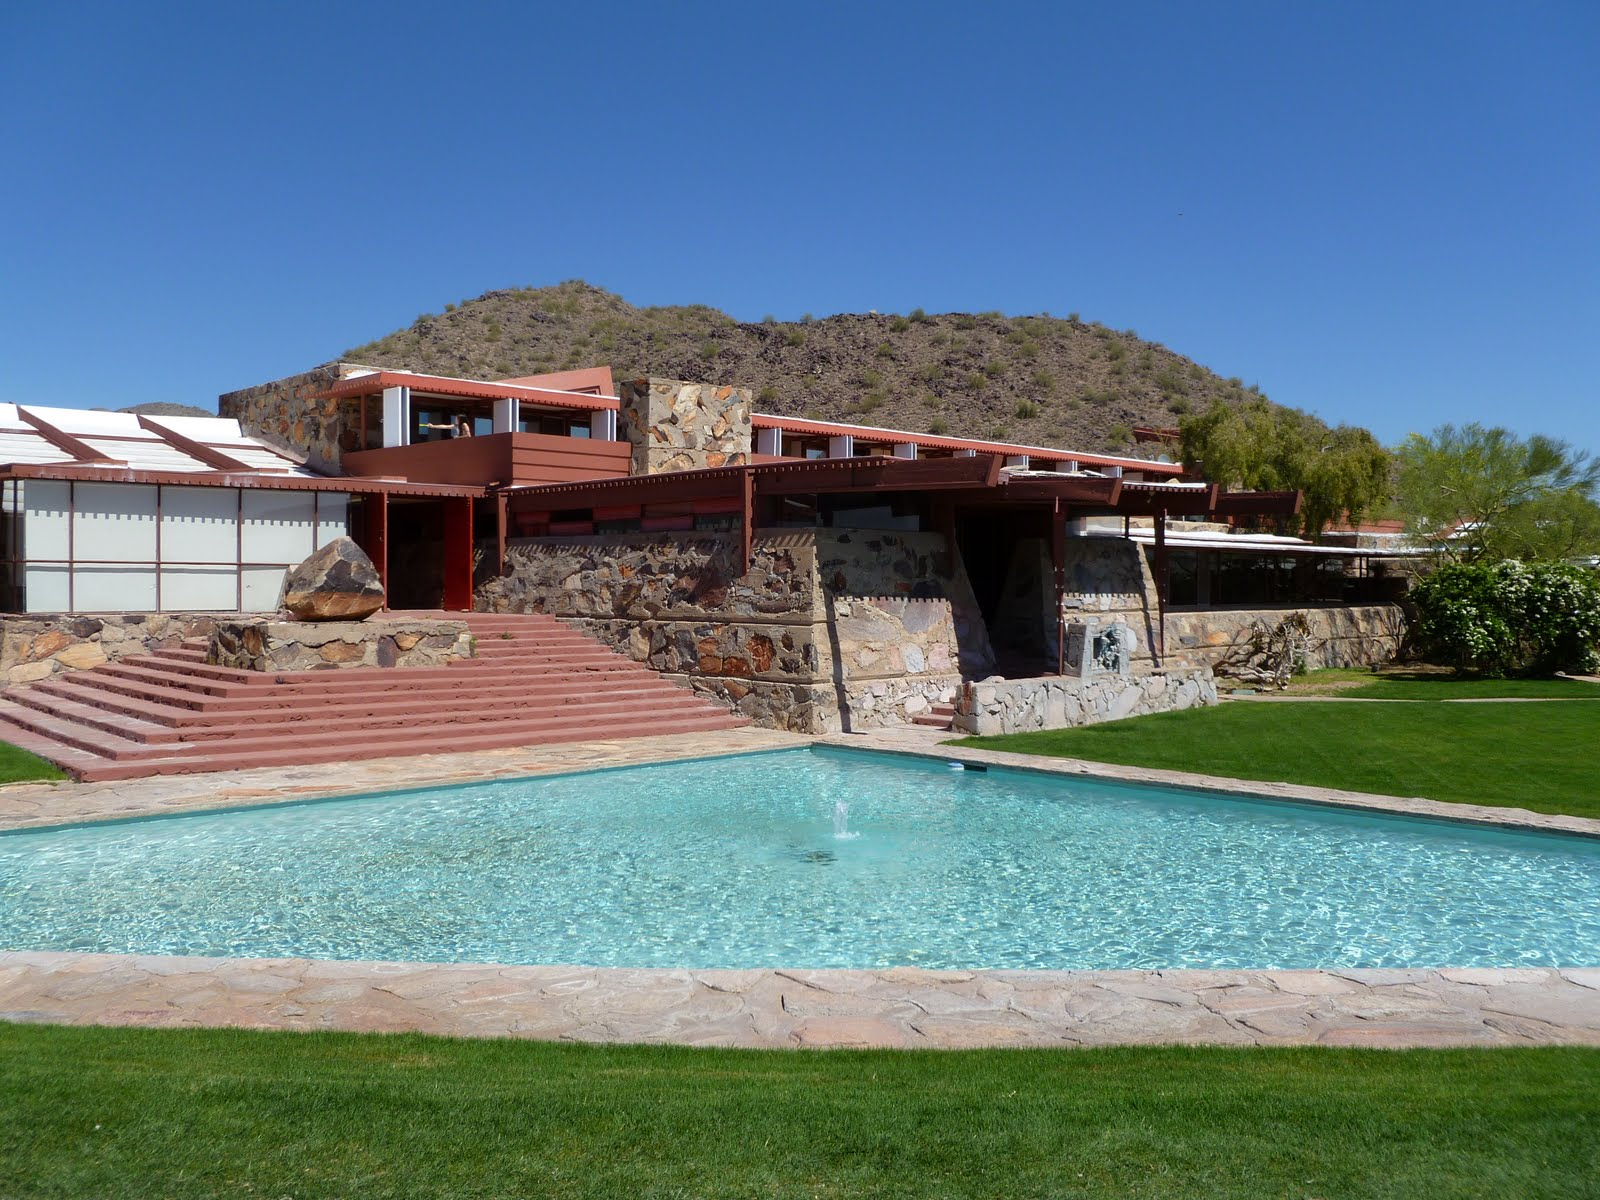 2 story mobile home manufacturers with Frank Lloyd Wright Homes Scottsdale on Foundation Walls besides 93294 Electron Beam Technology For Pressure Sensitive Adhesive Applications besides RanchModularHomes additionally Open Kitchen Floor Plan besides Jamaicacottageshop.